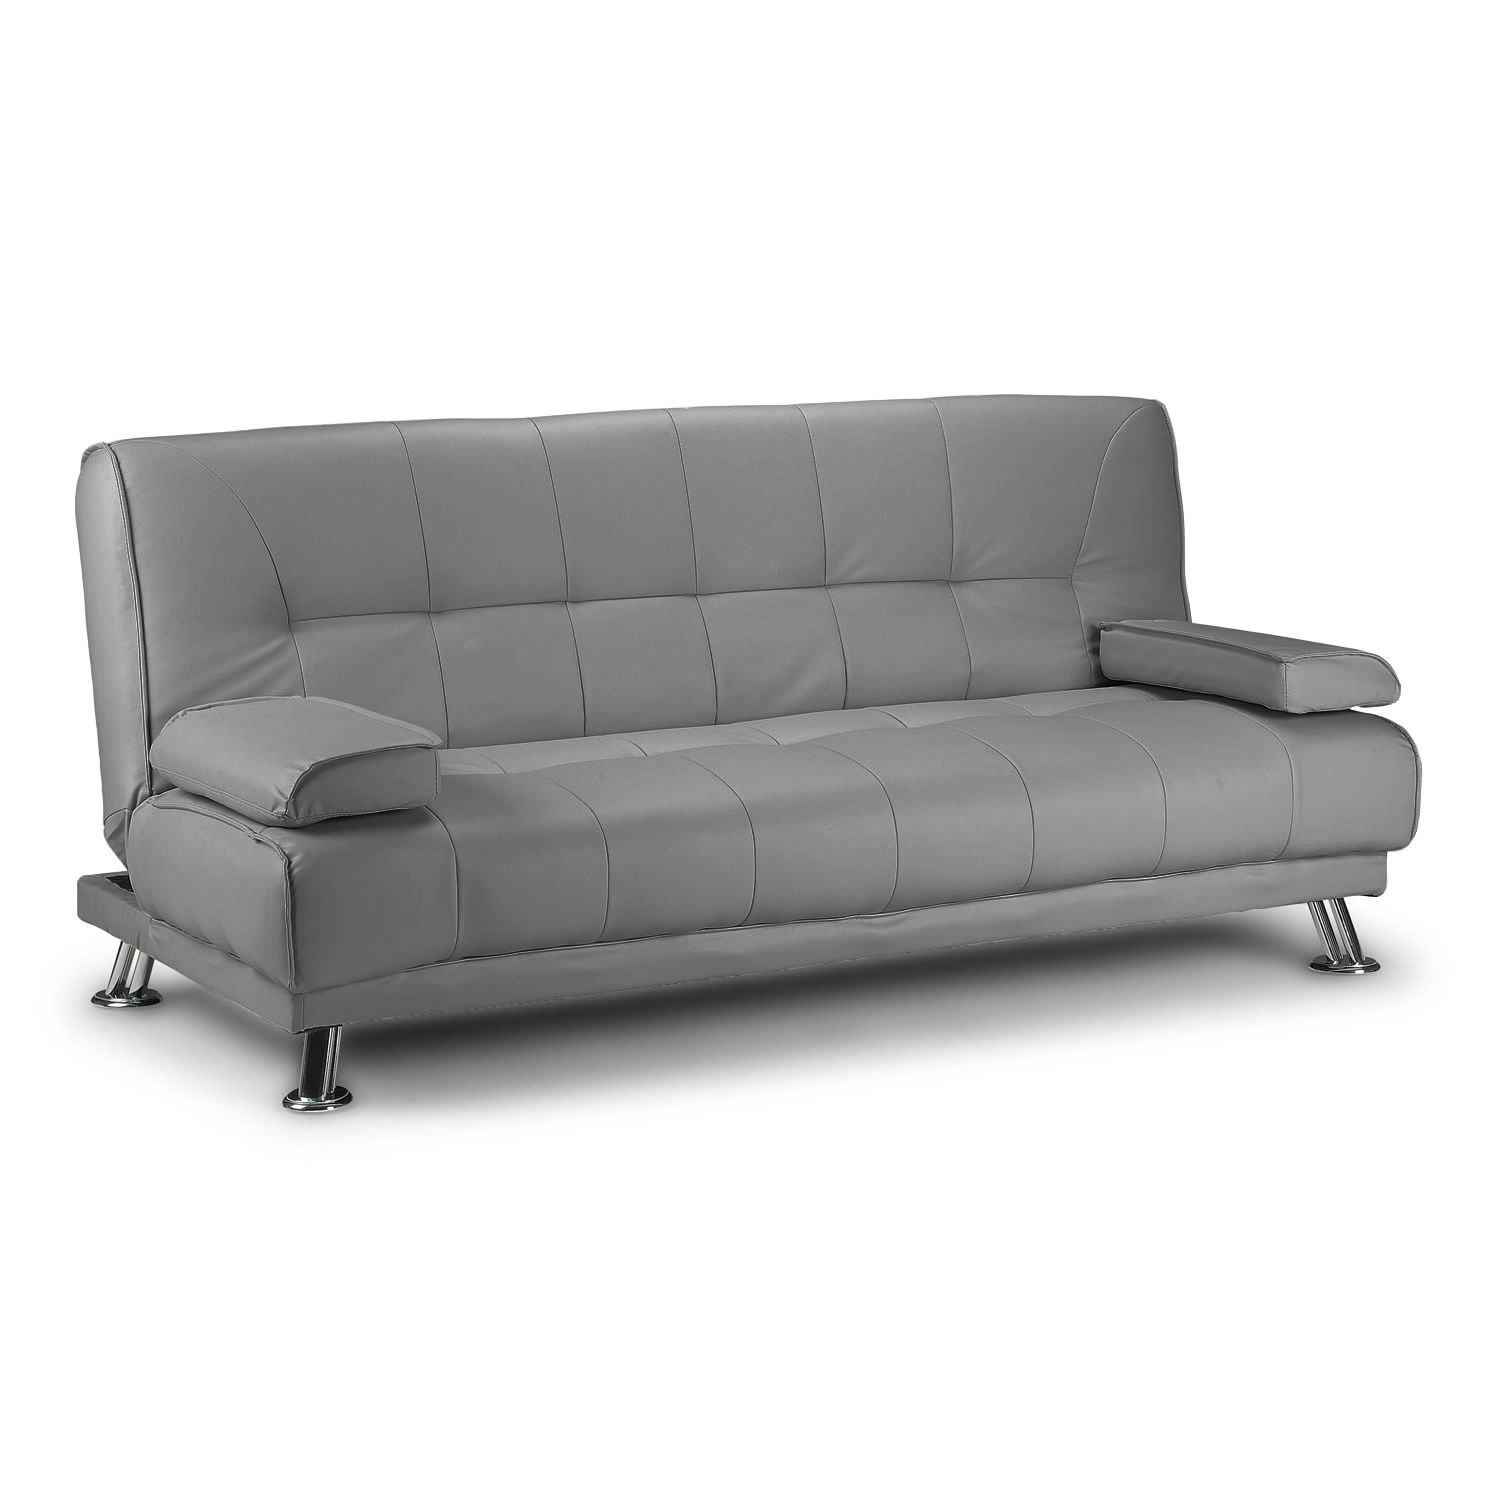 sofas delivered next day how to fix sofa slipcover delivery on brokeasshome